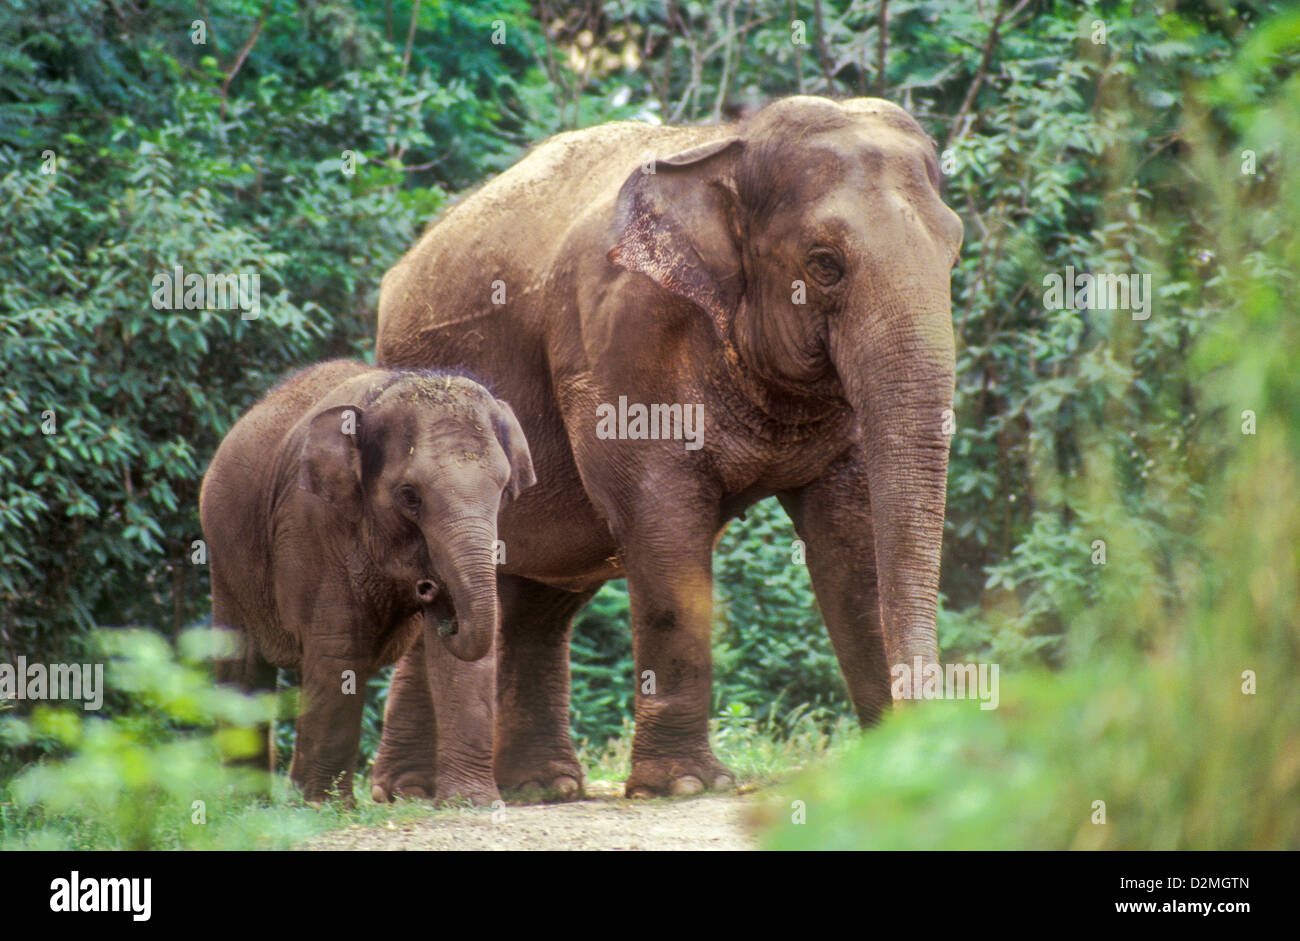 A baby elephant walking with it's mother. - Stock Image